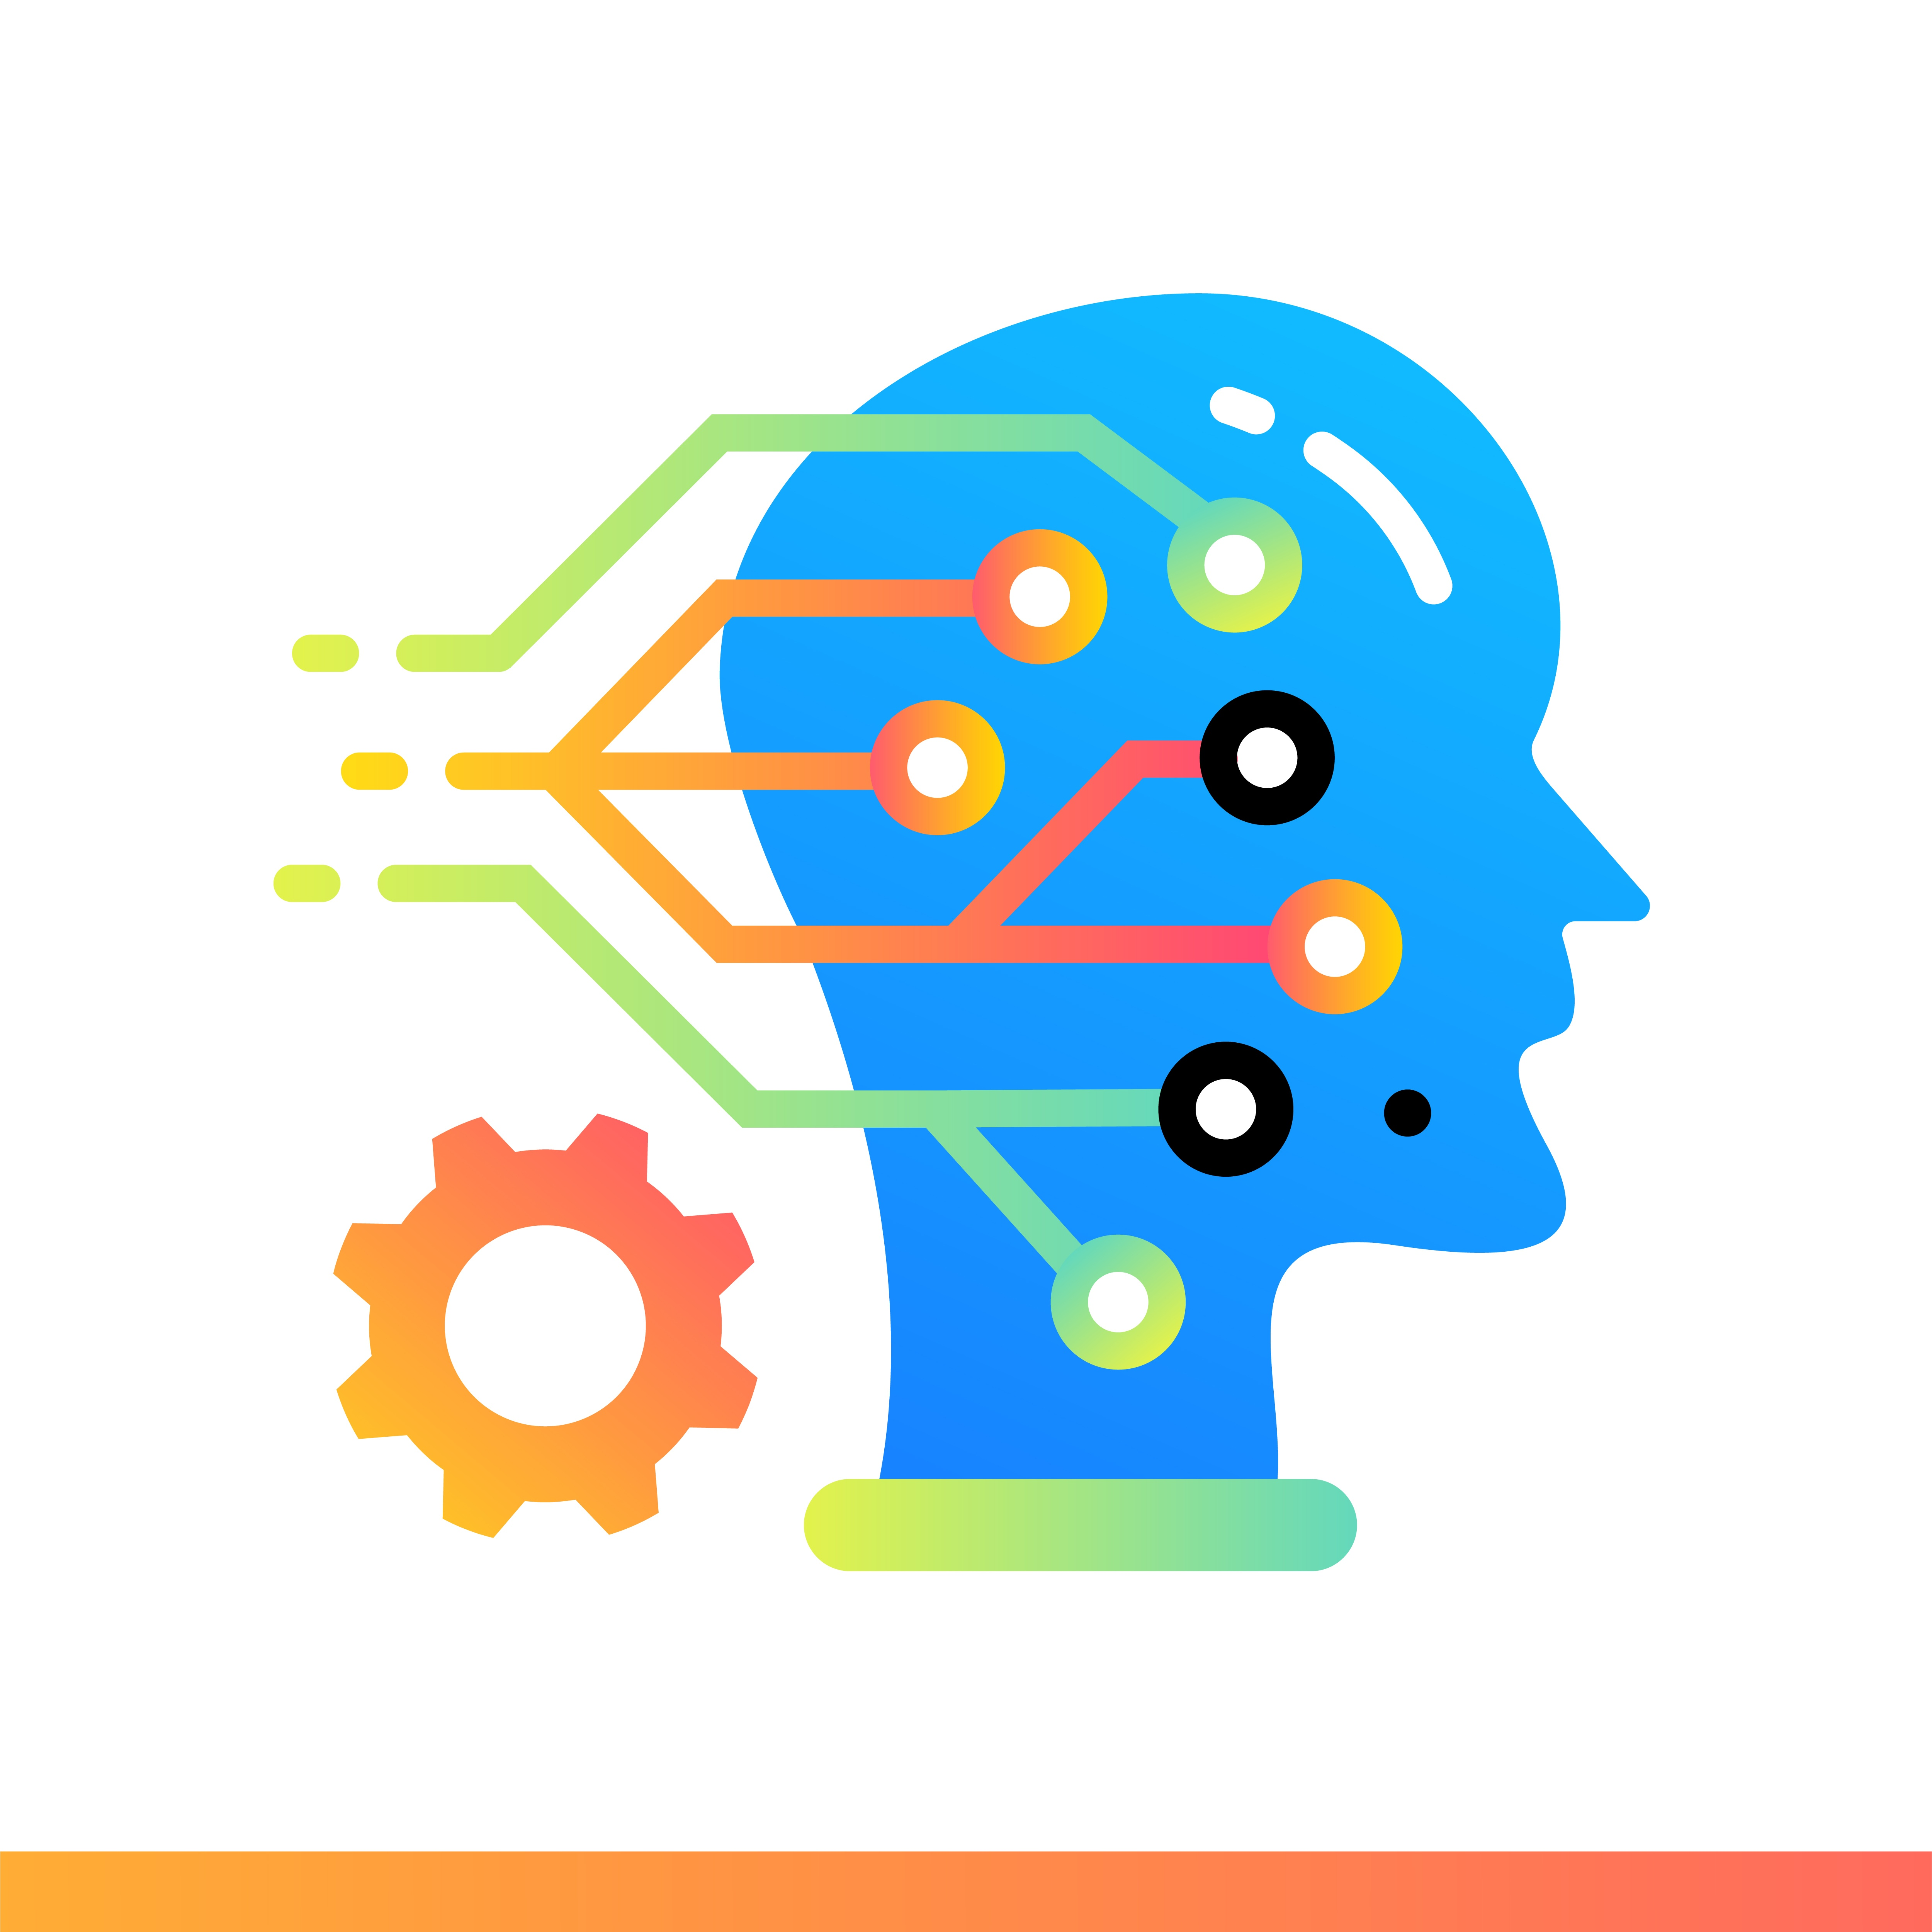 check the post:Machine Learning in the Healthcare Industry for a description of the image